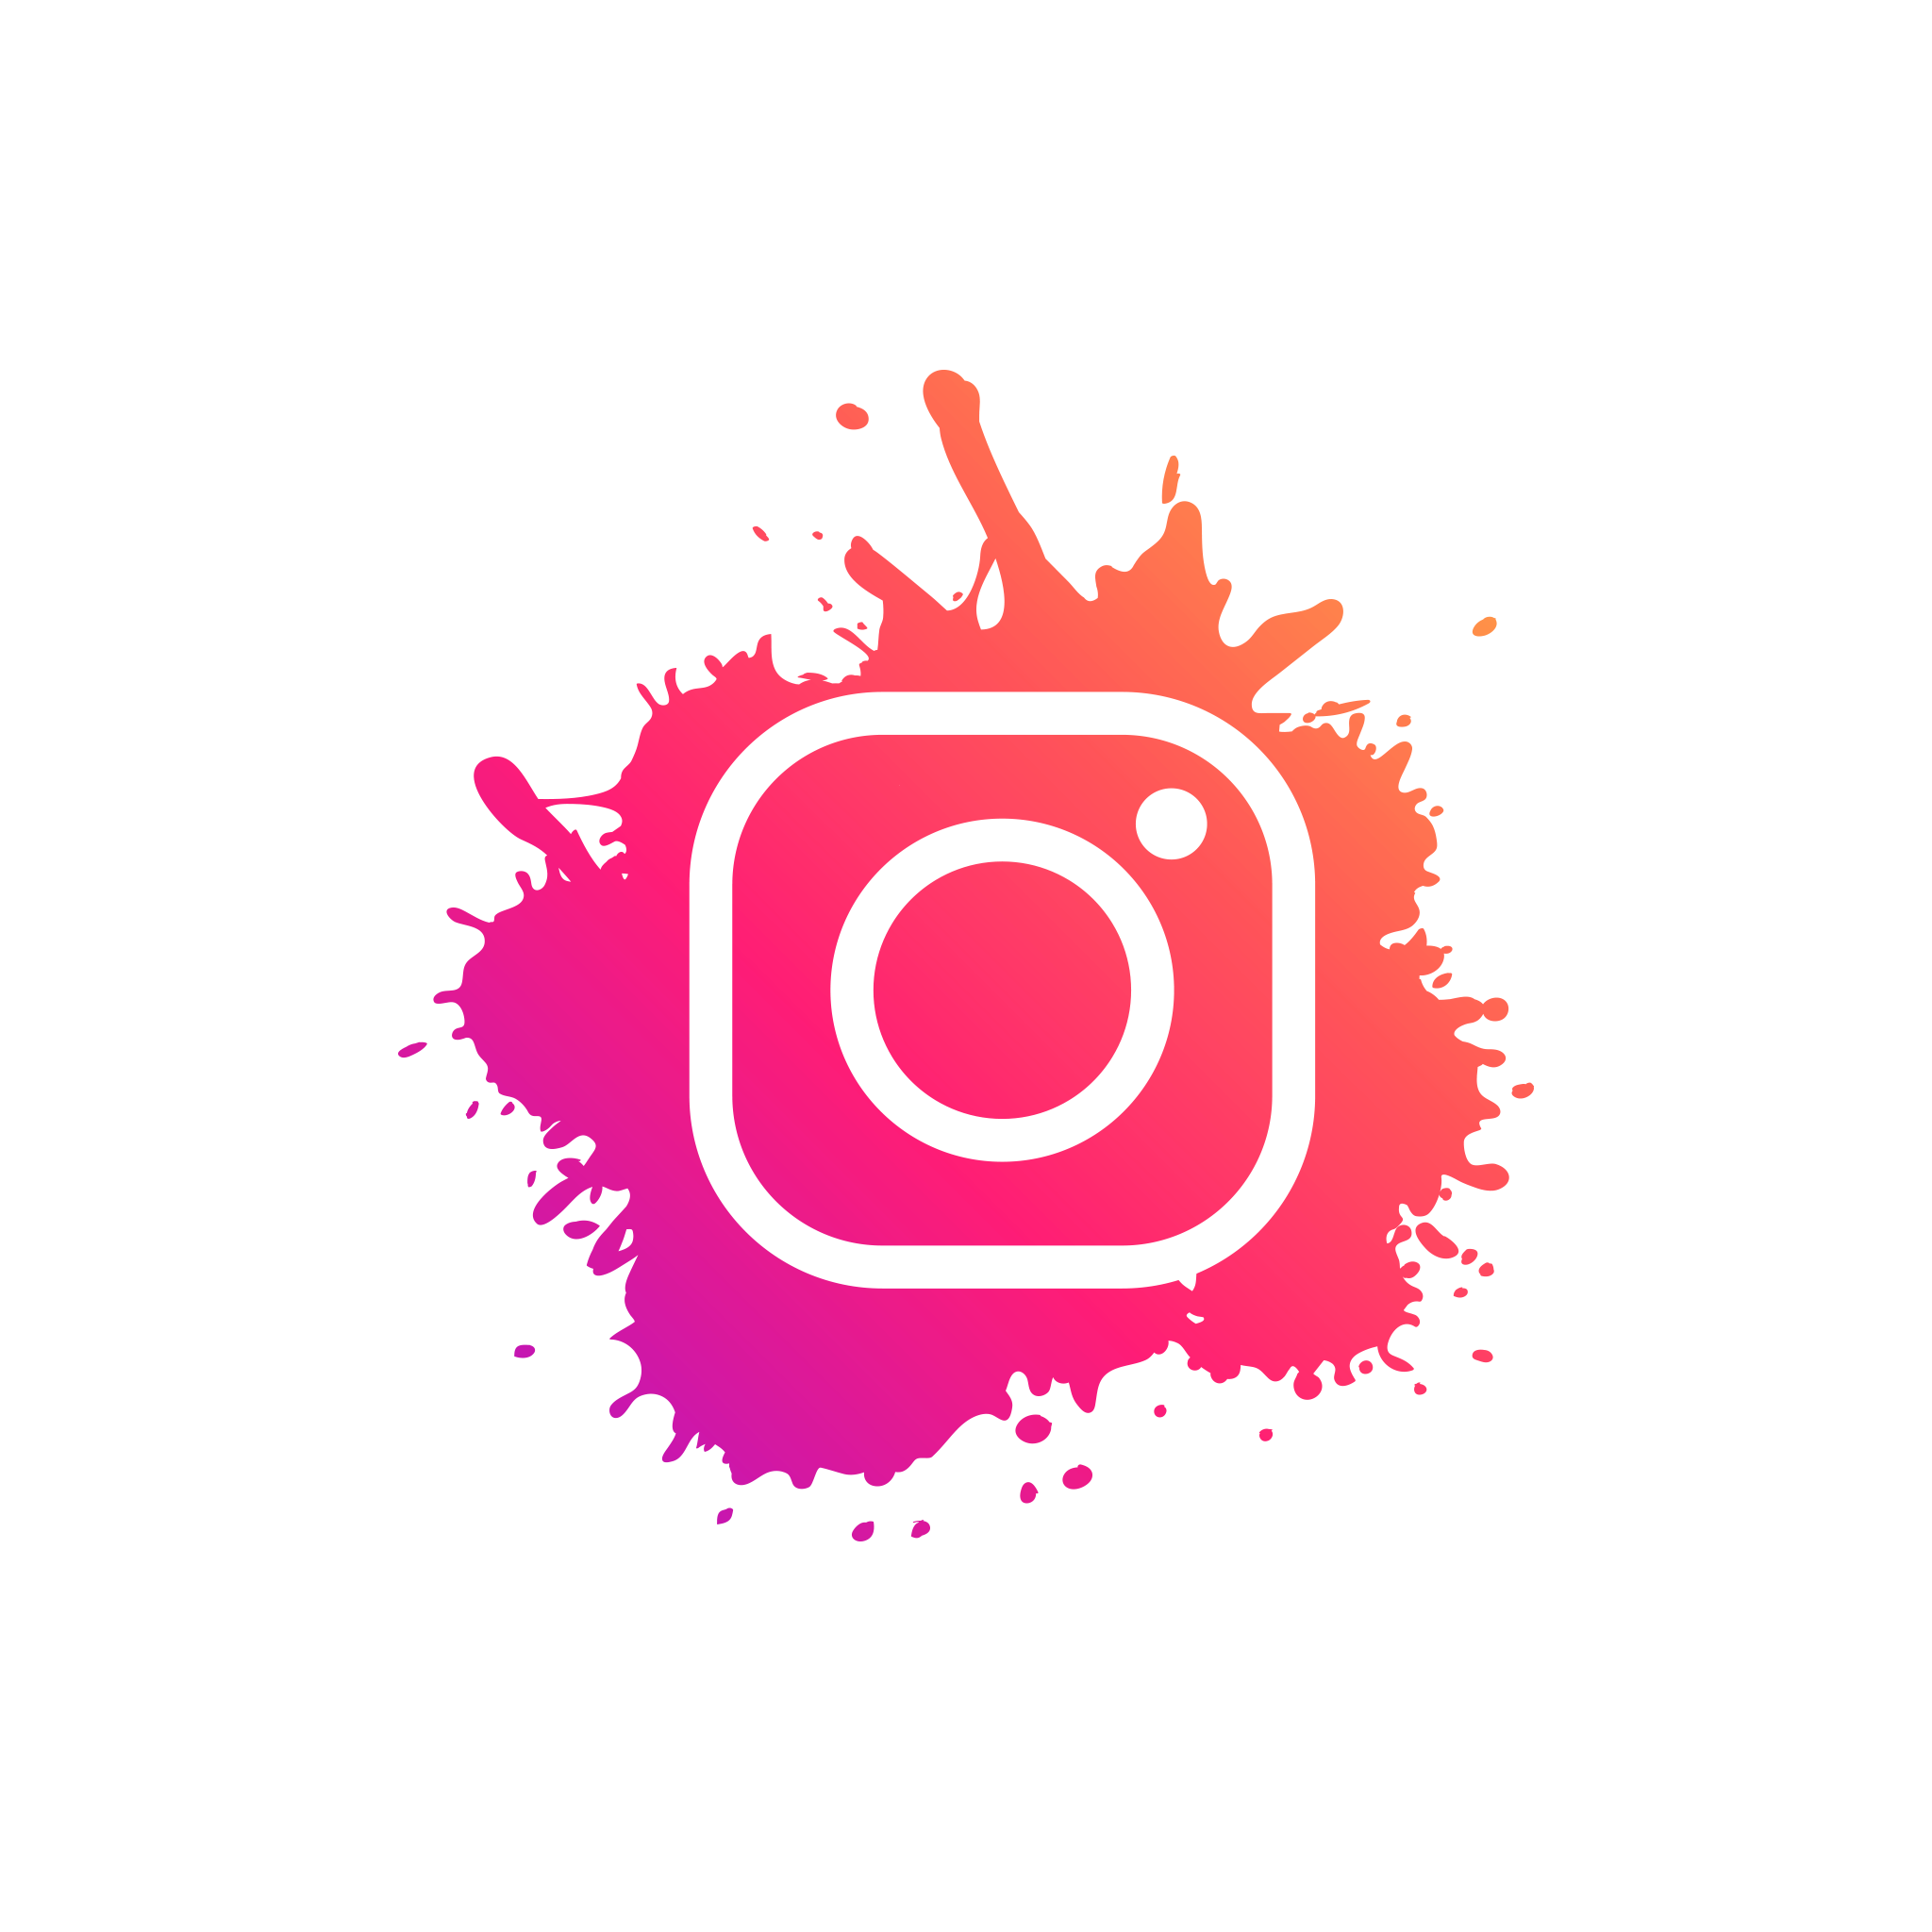 Splash Instagram Icon PNG Image | Free Download in 2020 | Instagram icons,  Instagram symbols, Instagram logo